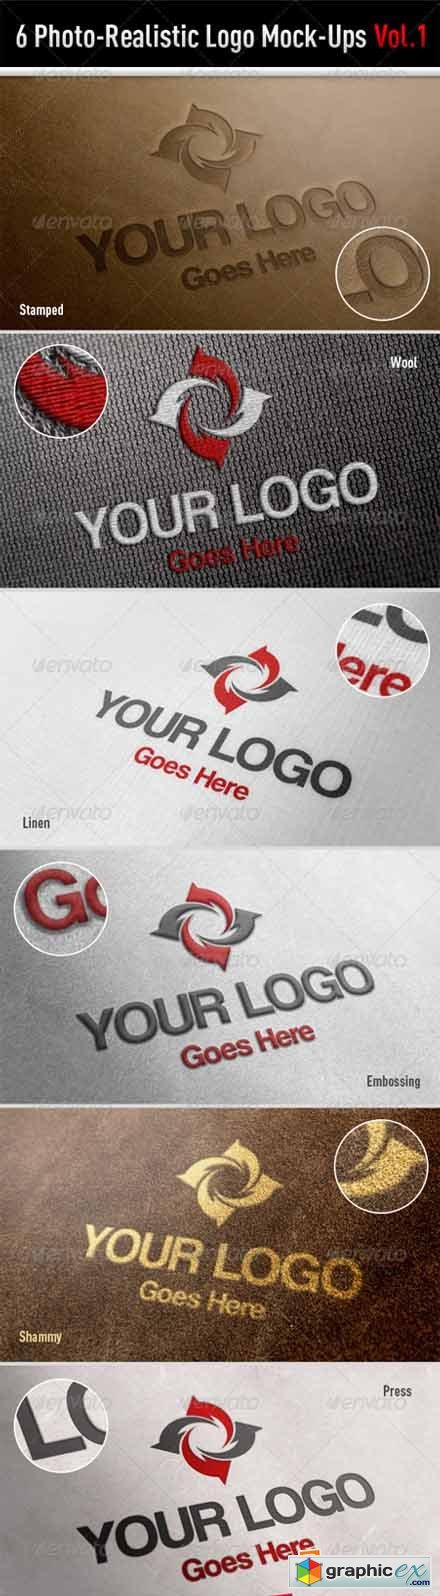 Photo-Realistic Logo Mock-Ups Vol.1 3243494